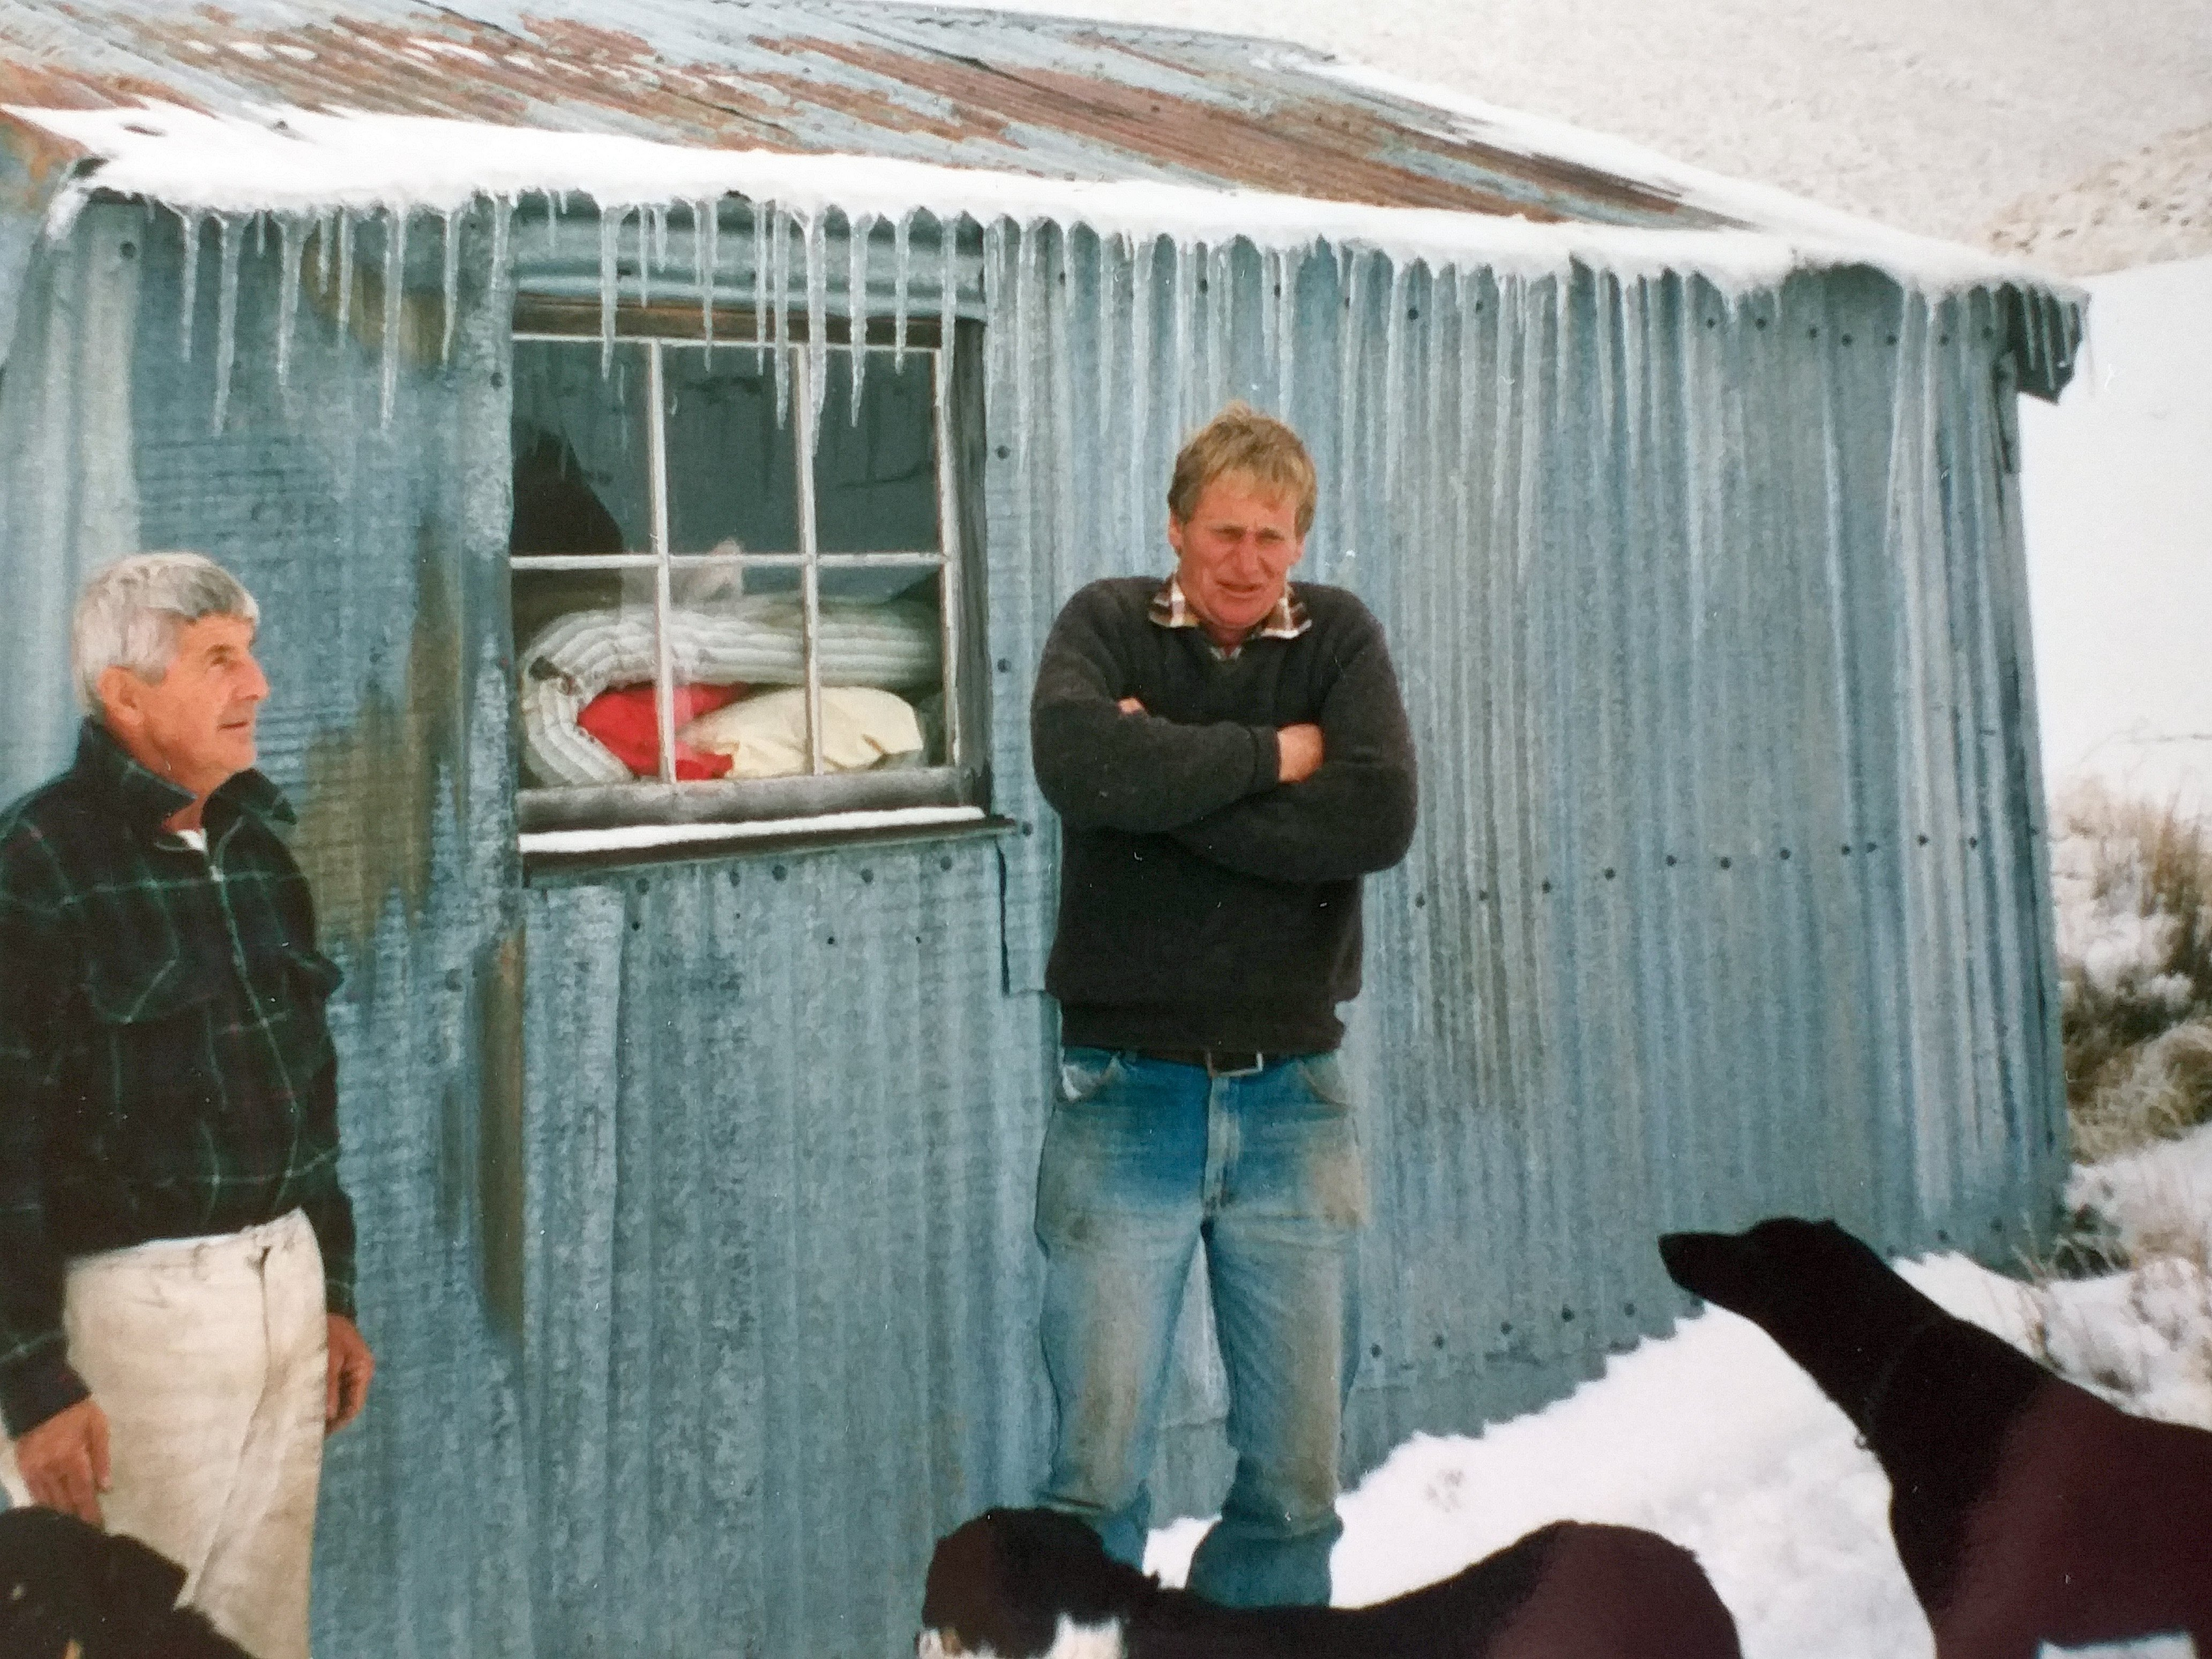 Packer Jim Tallentire (left) and musterer Tim Crutchley outside the Blue Duck hut during a...